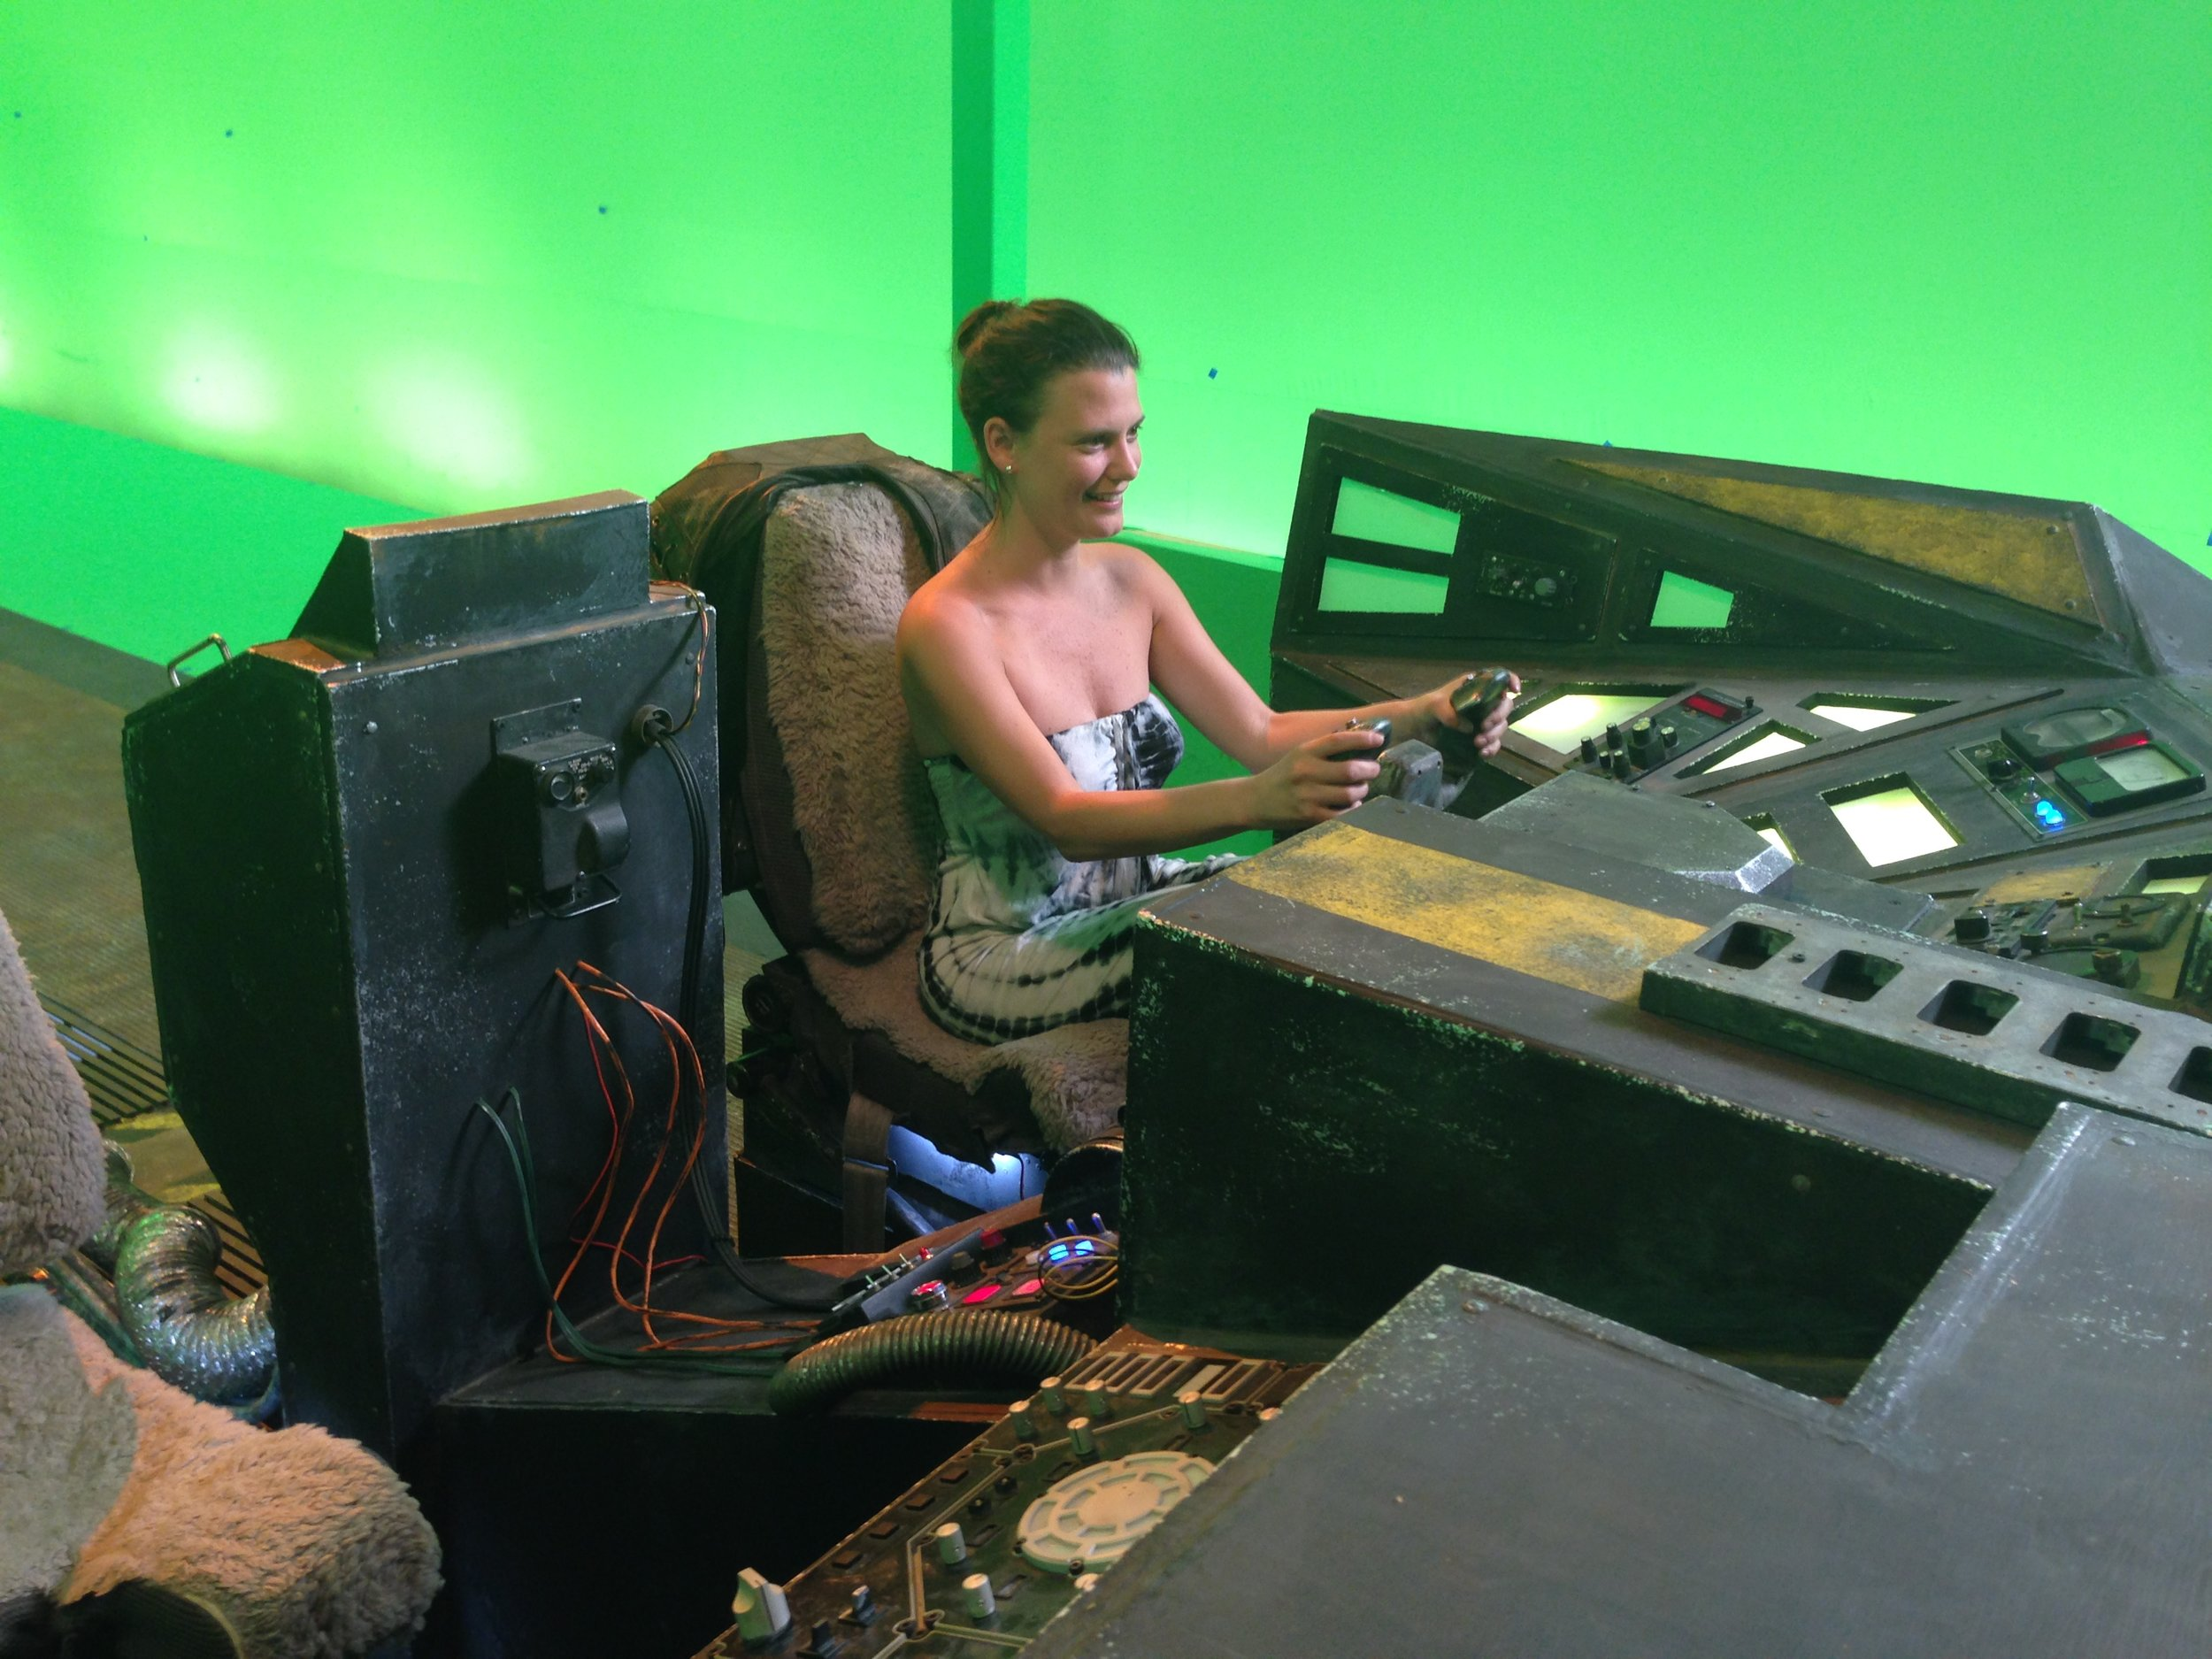 Behind the scenes of The Shipment - Ana at control